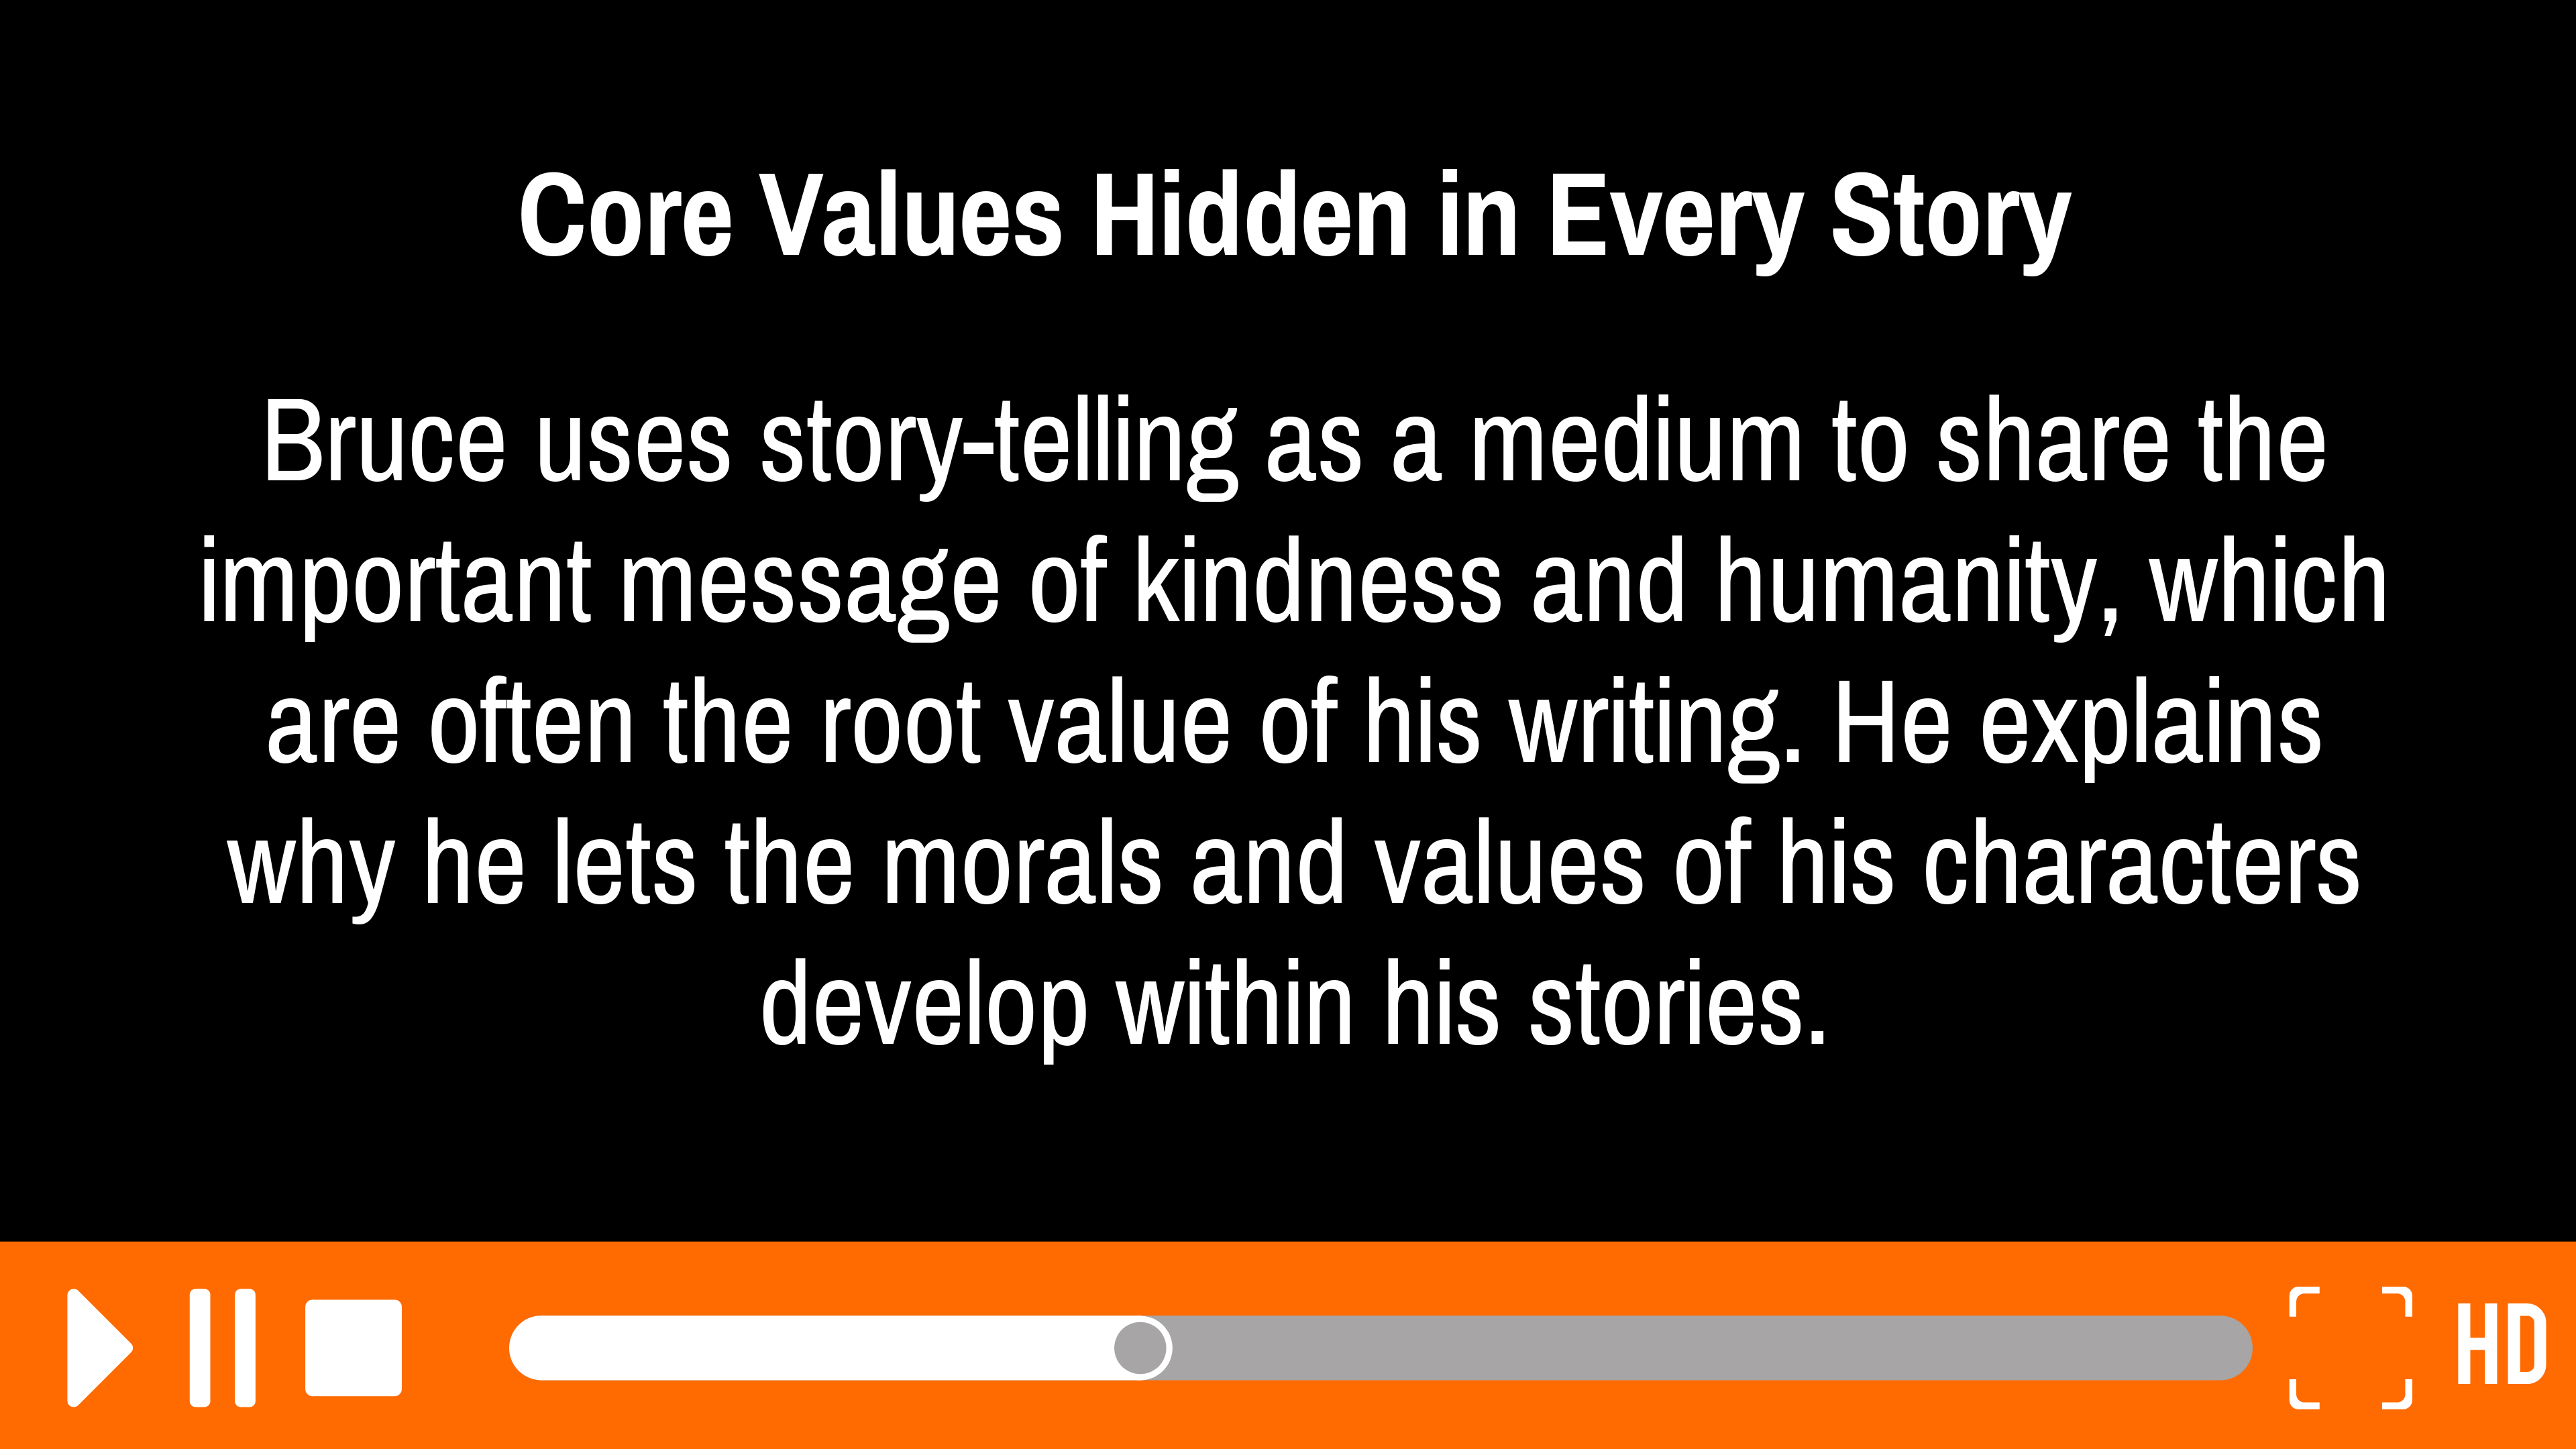 Core Values Hidden in Every Story: 3 of 7